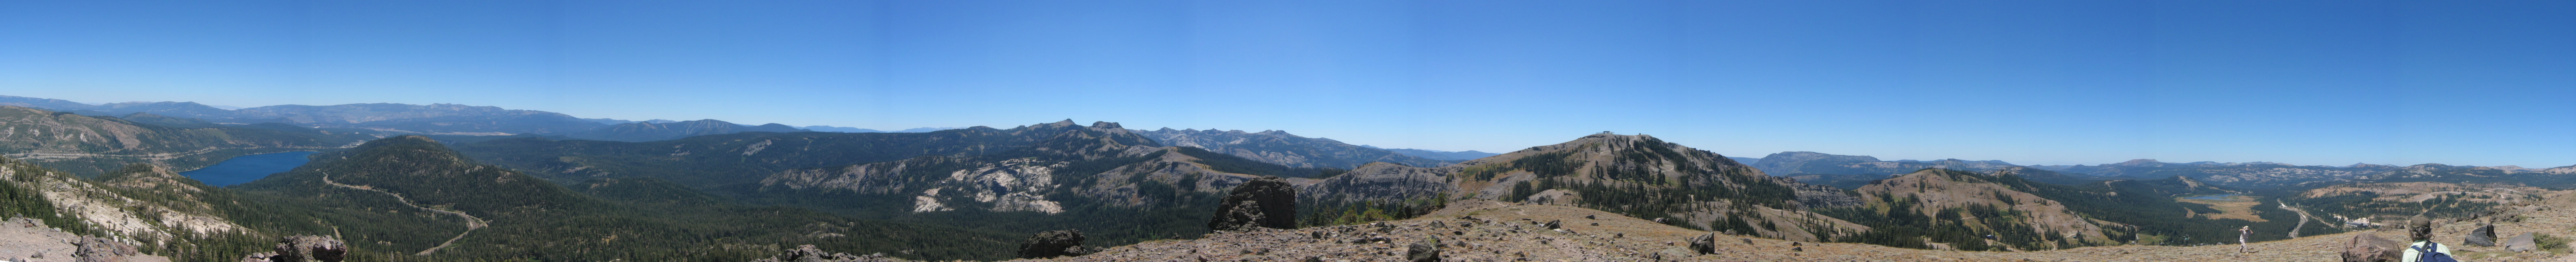 Panorama of Mt. Judah | Creating a couple's bucket list to create the relationship you want.